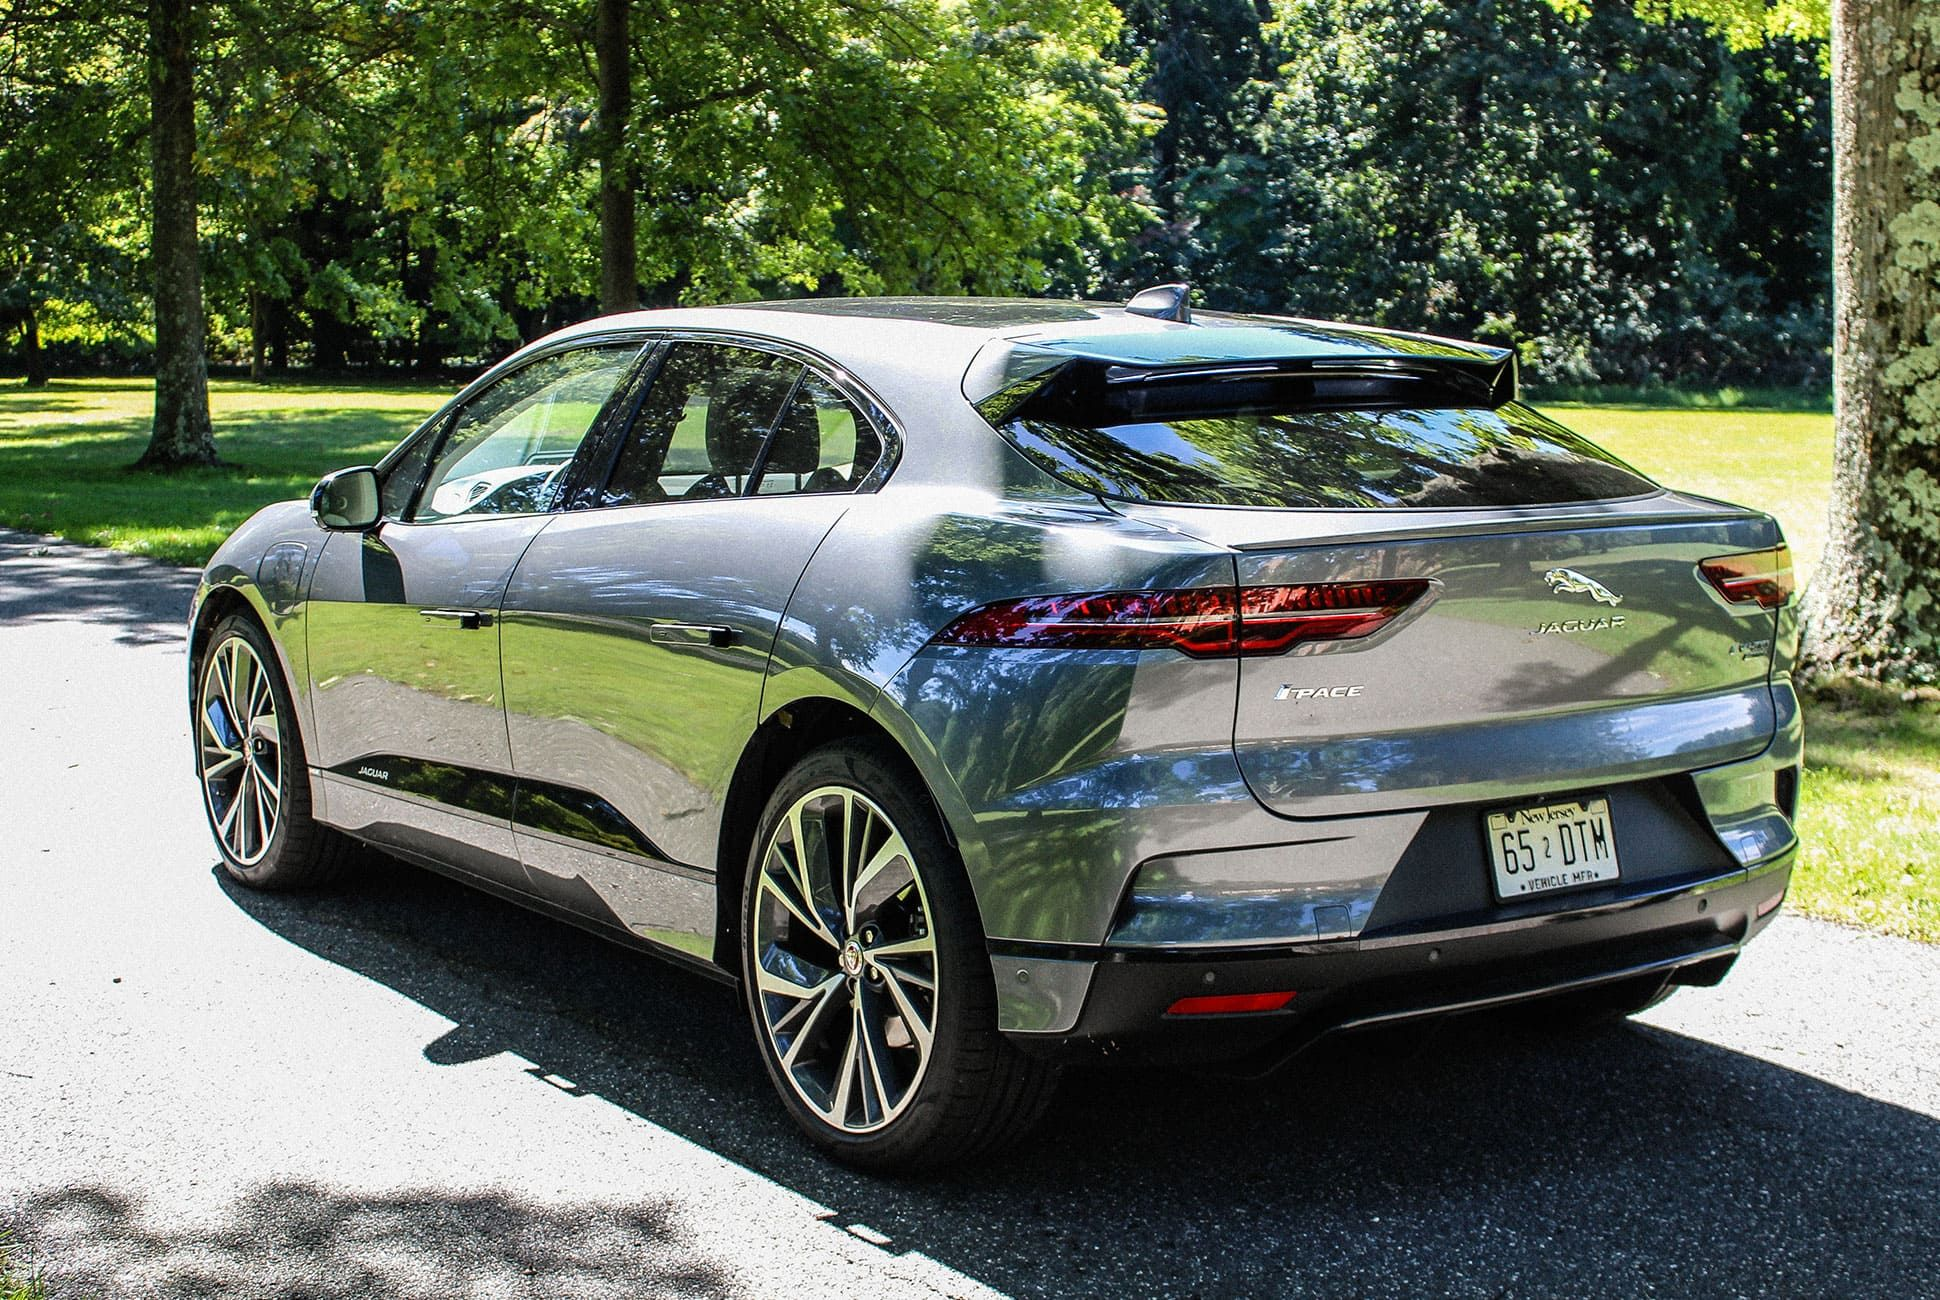 Jaguar-I-Pace-Review-gear-patrol-slide-6